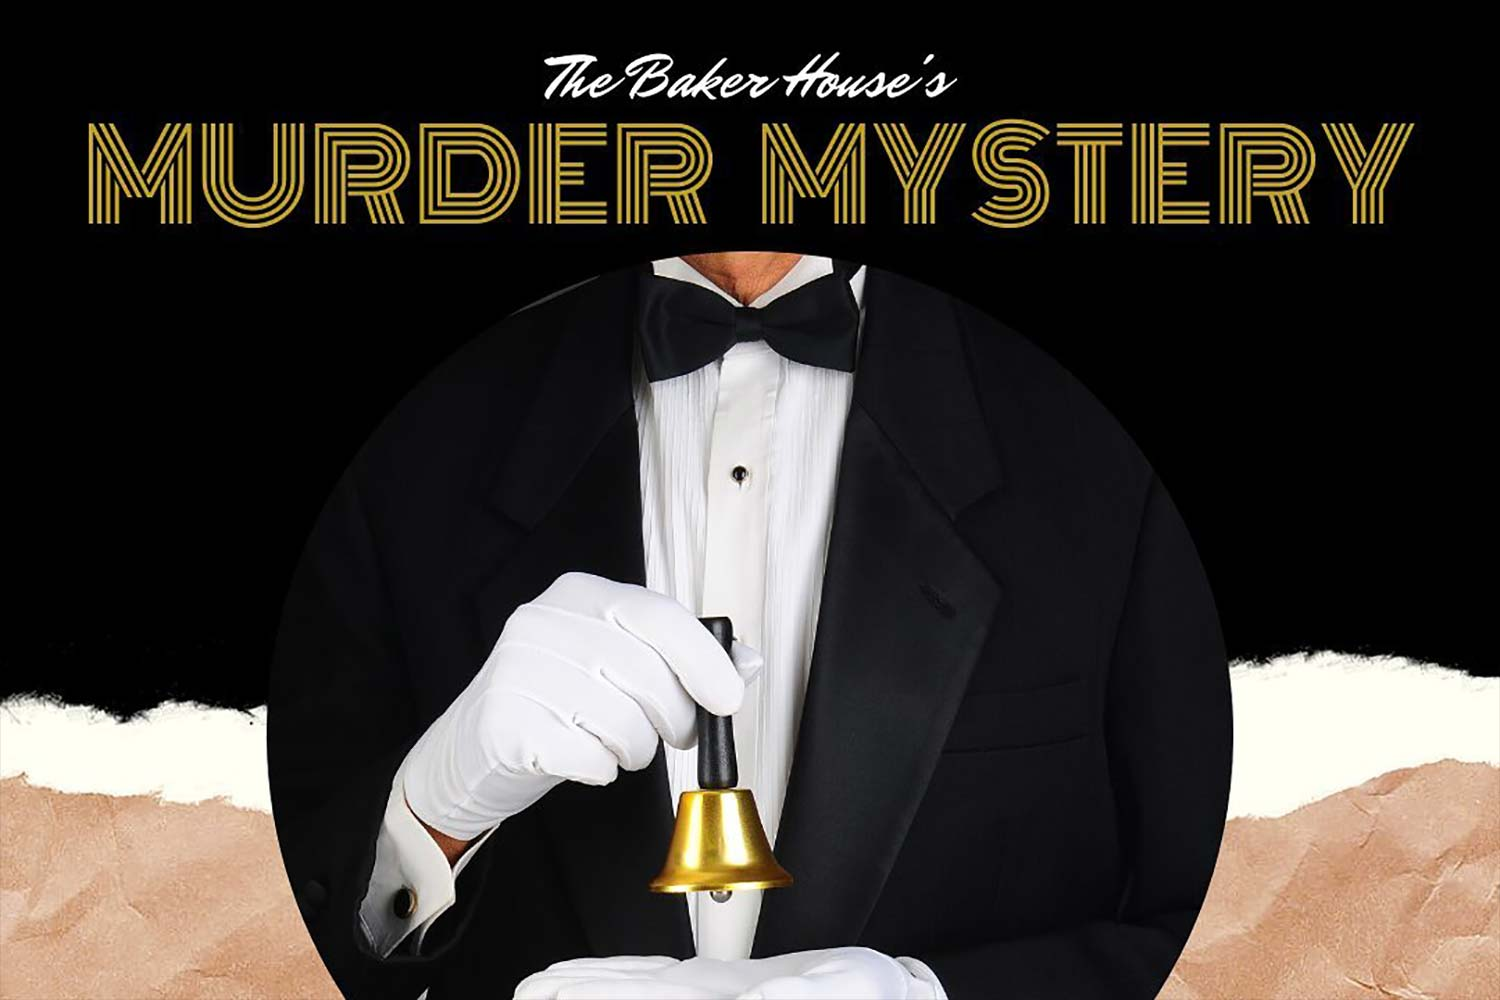 Murder-Mystery-Baker-House-Events